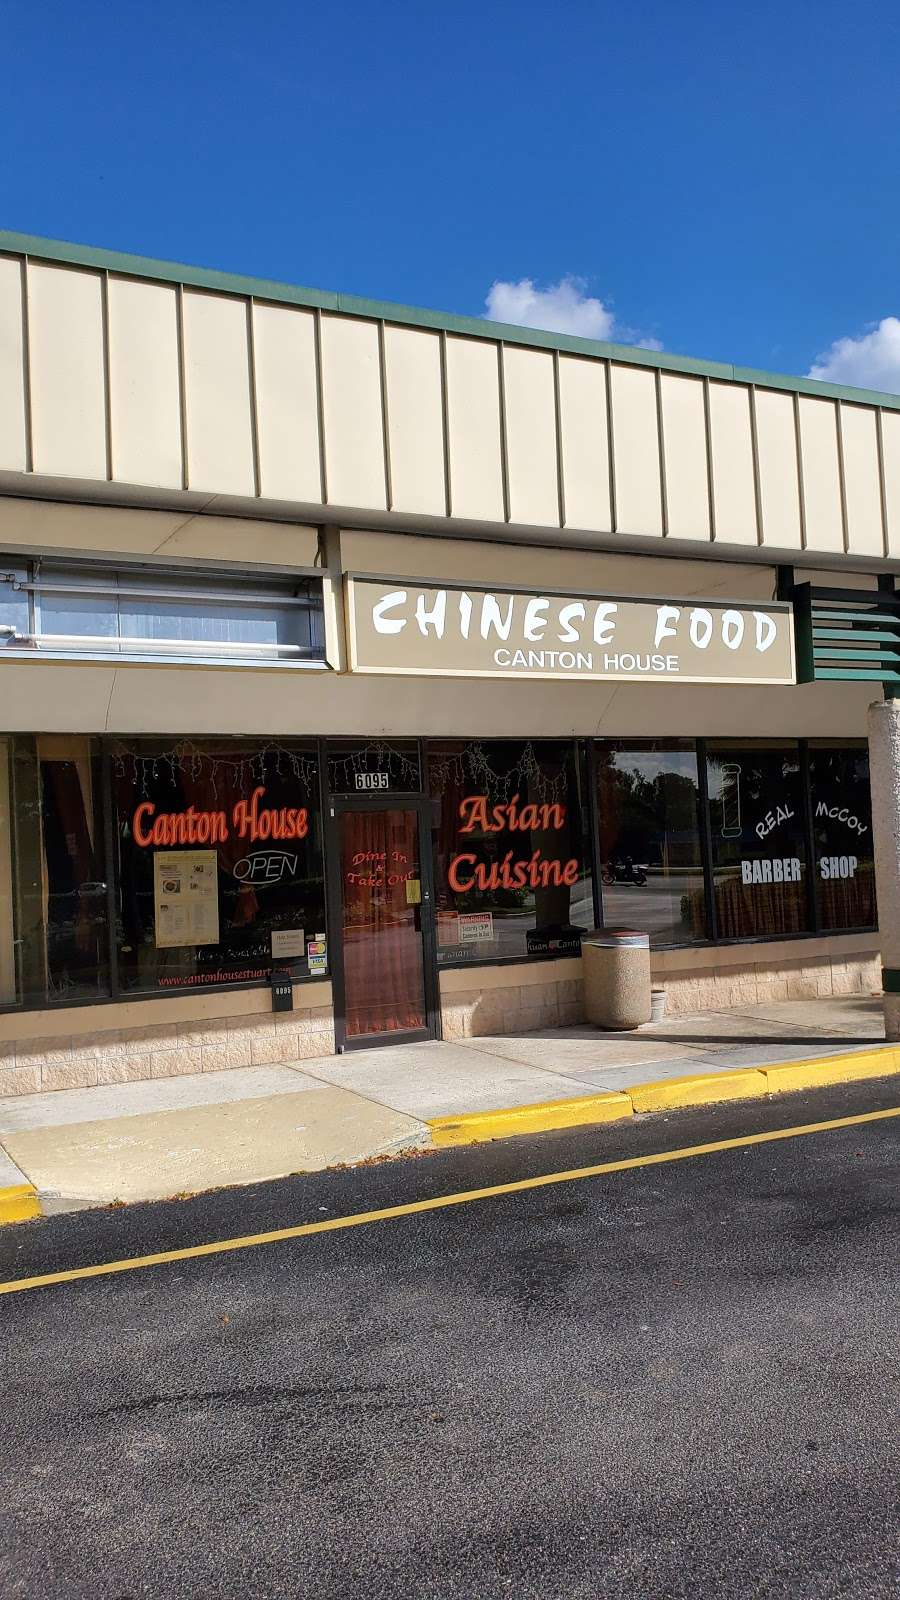 Canton House Chinese Restaurant - meal delivery  | Photo 6 of 10 | Address: 6095 SE Federal Hwy, Stuart, FL 34997, USA | Phone: (772) 288-1126